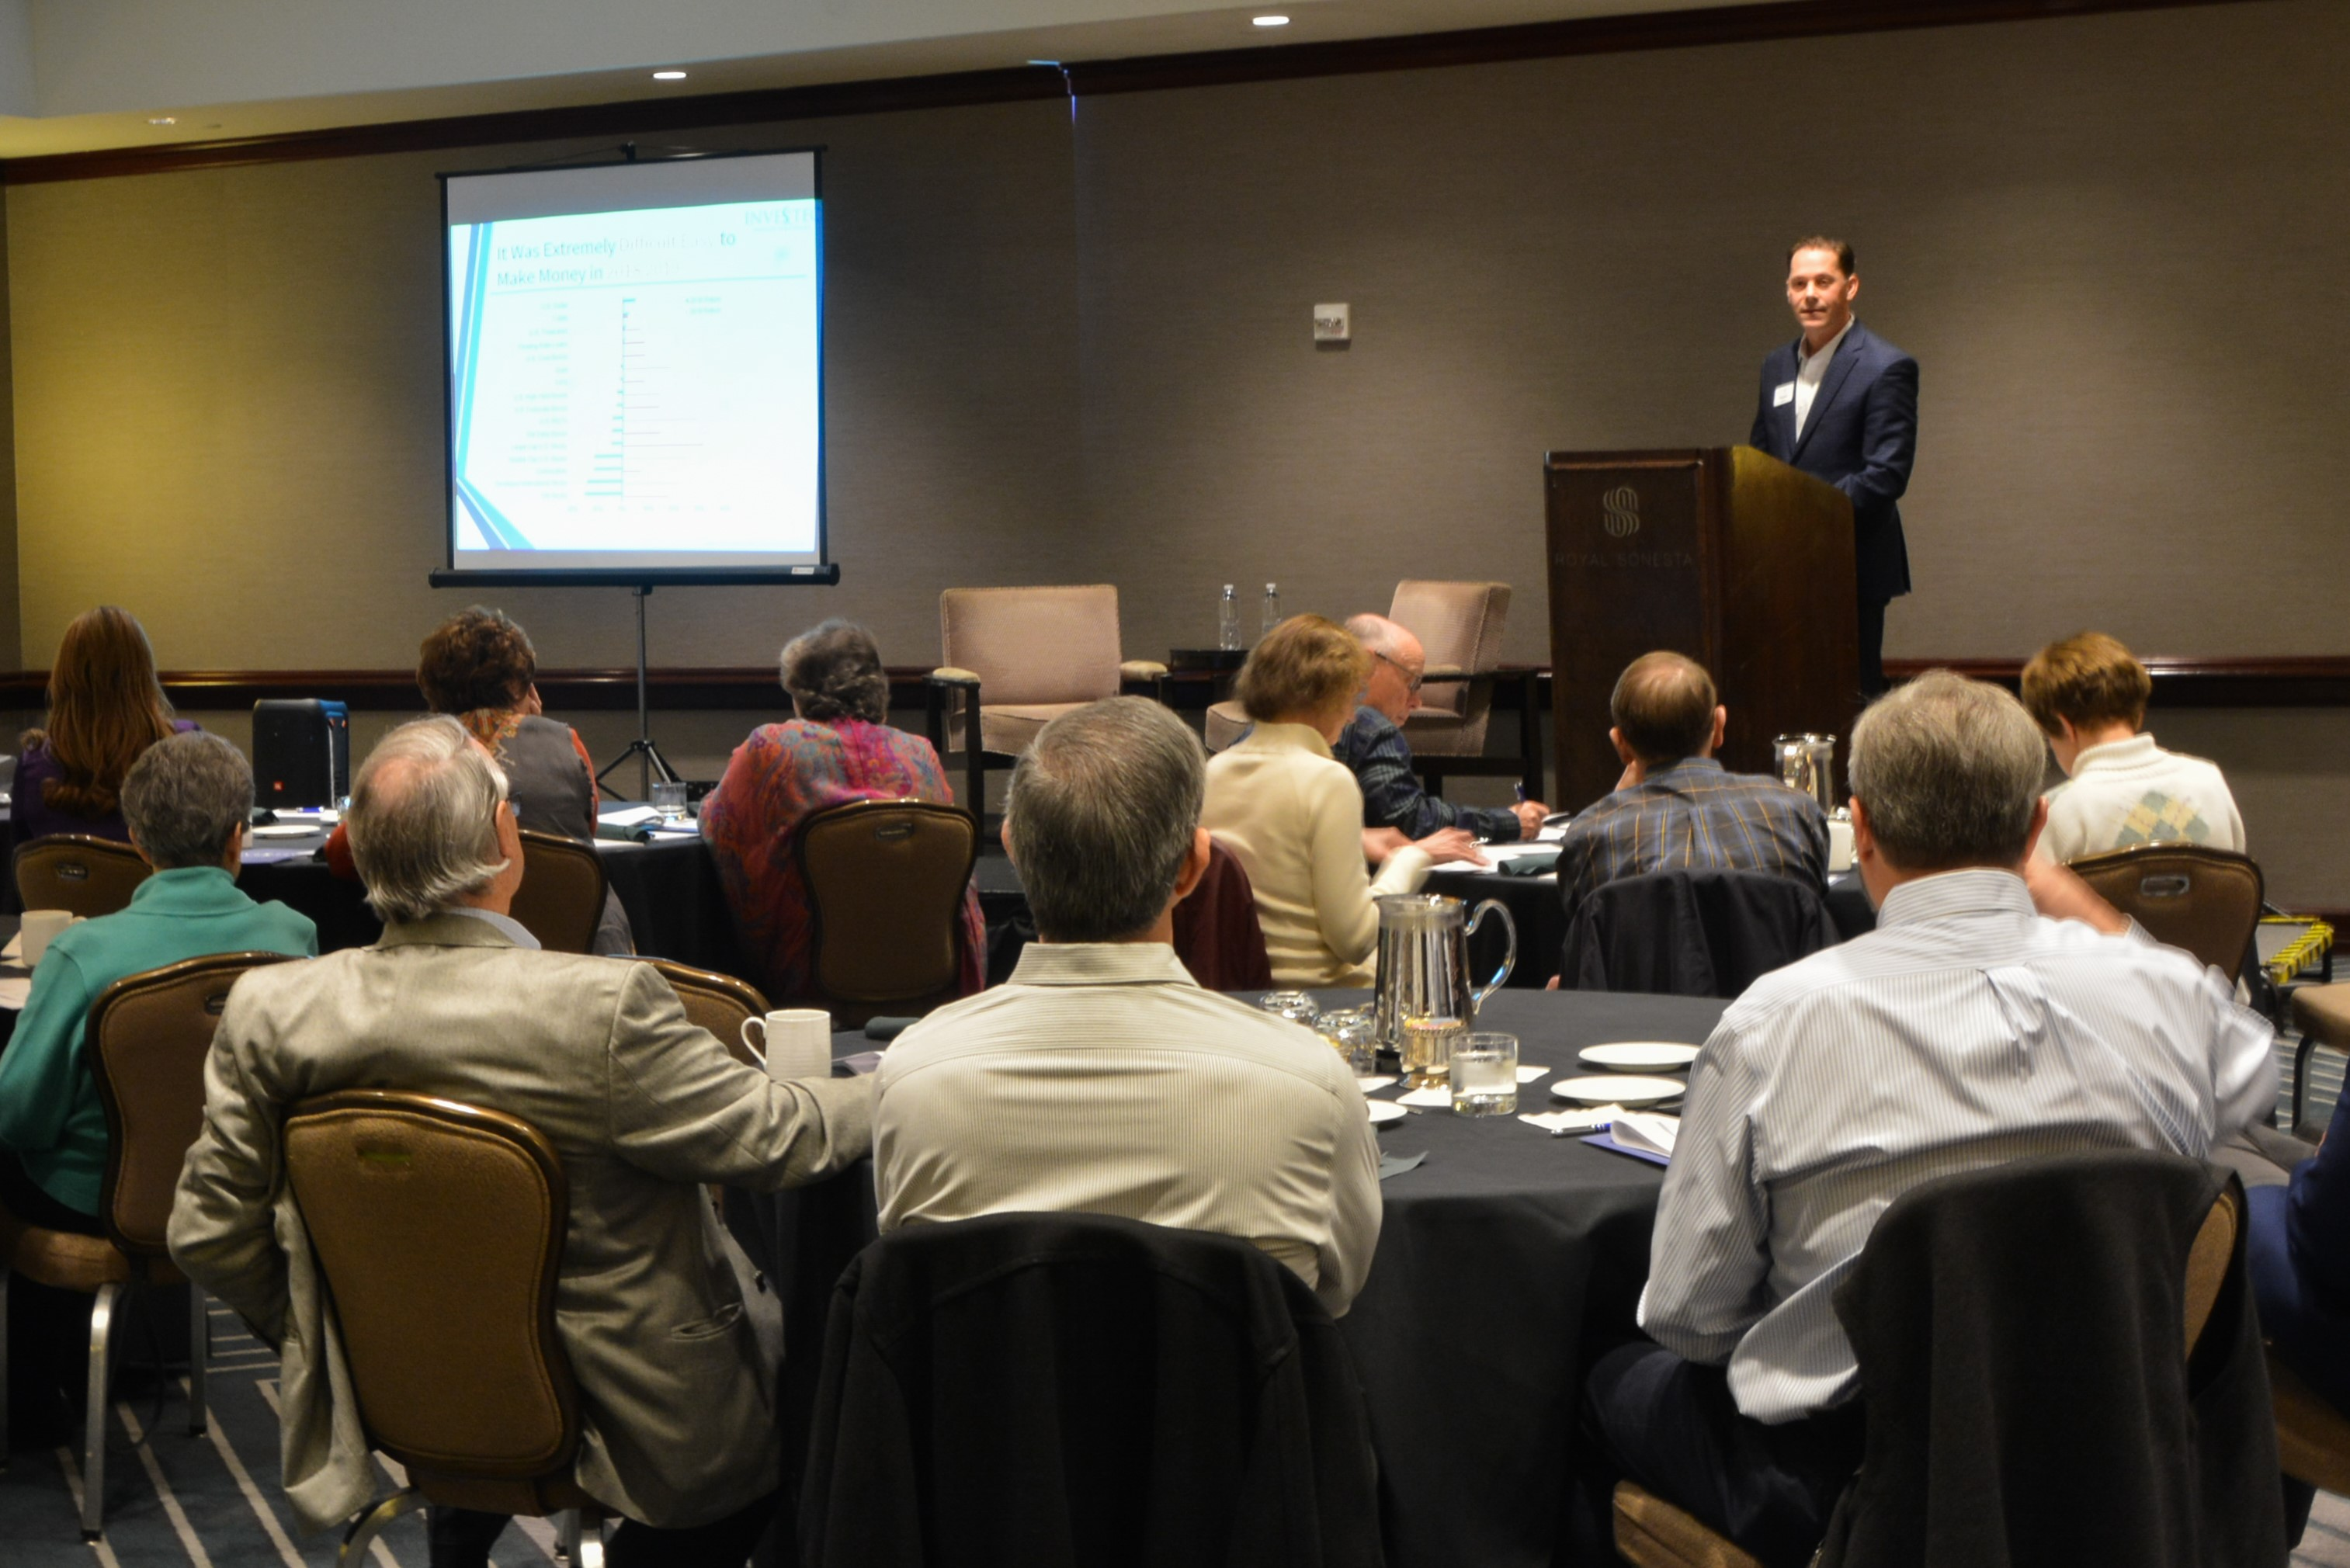 Daniel Goott, Principal, discussed market outlook with clients.